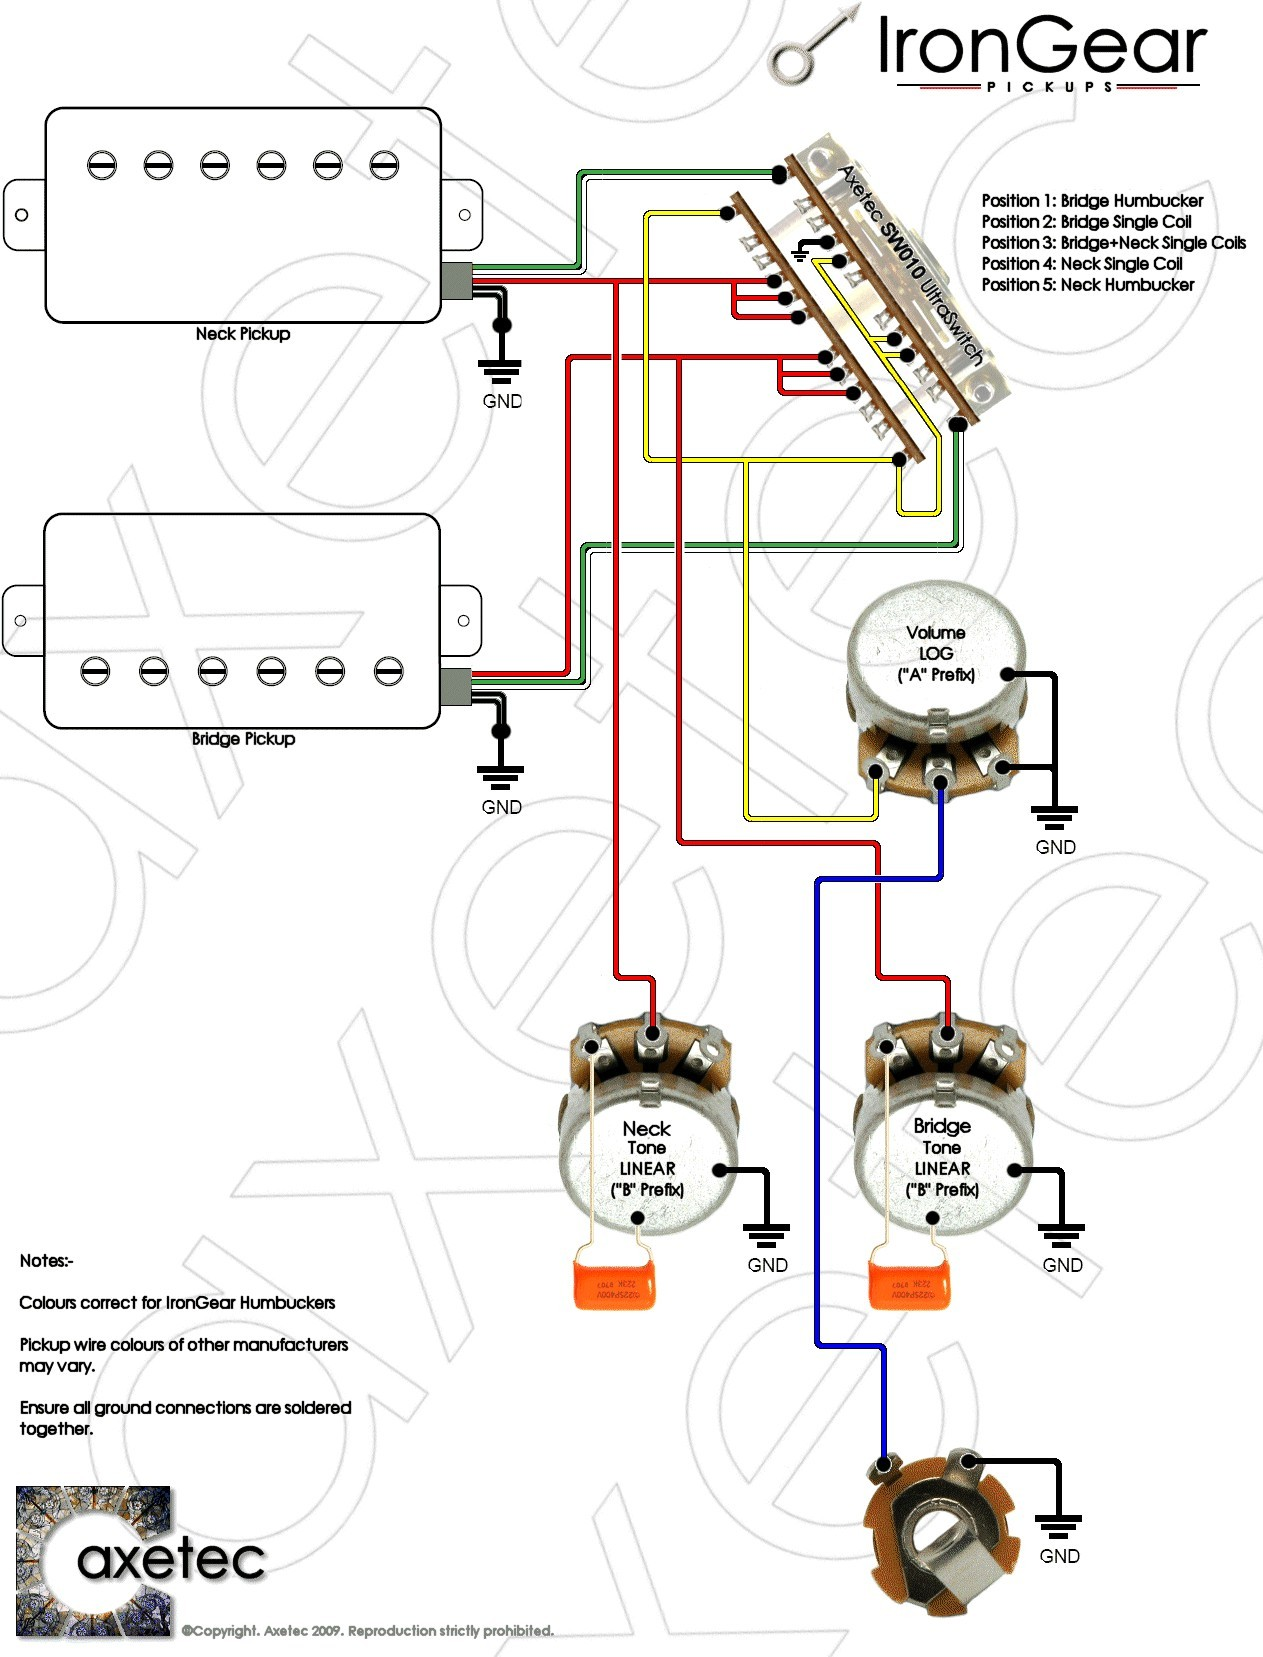 Guitar Wiring Diagrams 2 Pickups Electric Guitar Wiring Diagram E Pickup Inspirationa Guitar Wiring Of Guitar Wiring Diagrams 2 Pickups Electric Guitar Wiring Diagram E Pickup New Guitar Wiring Diagrams